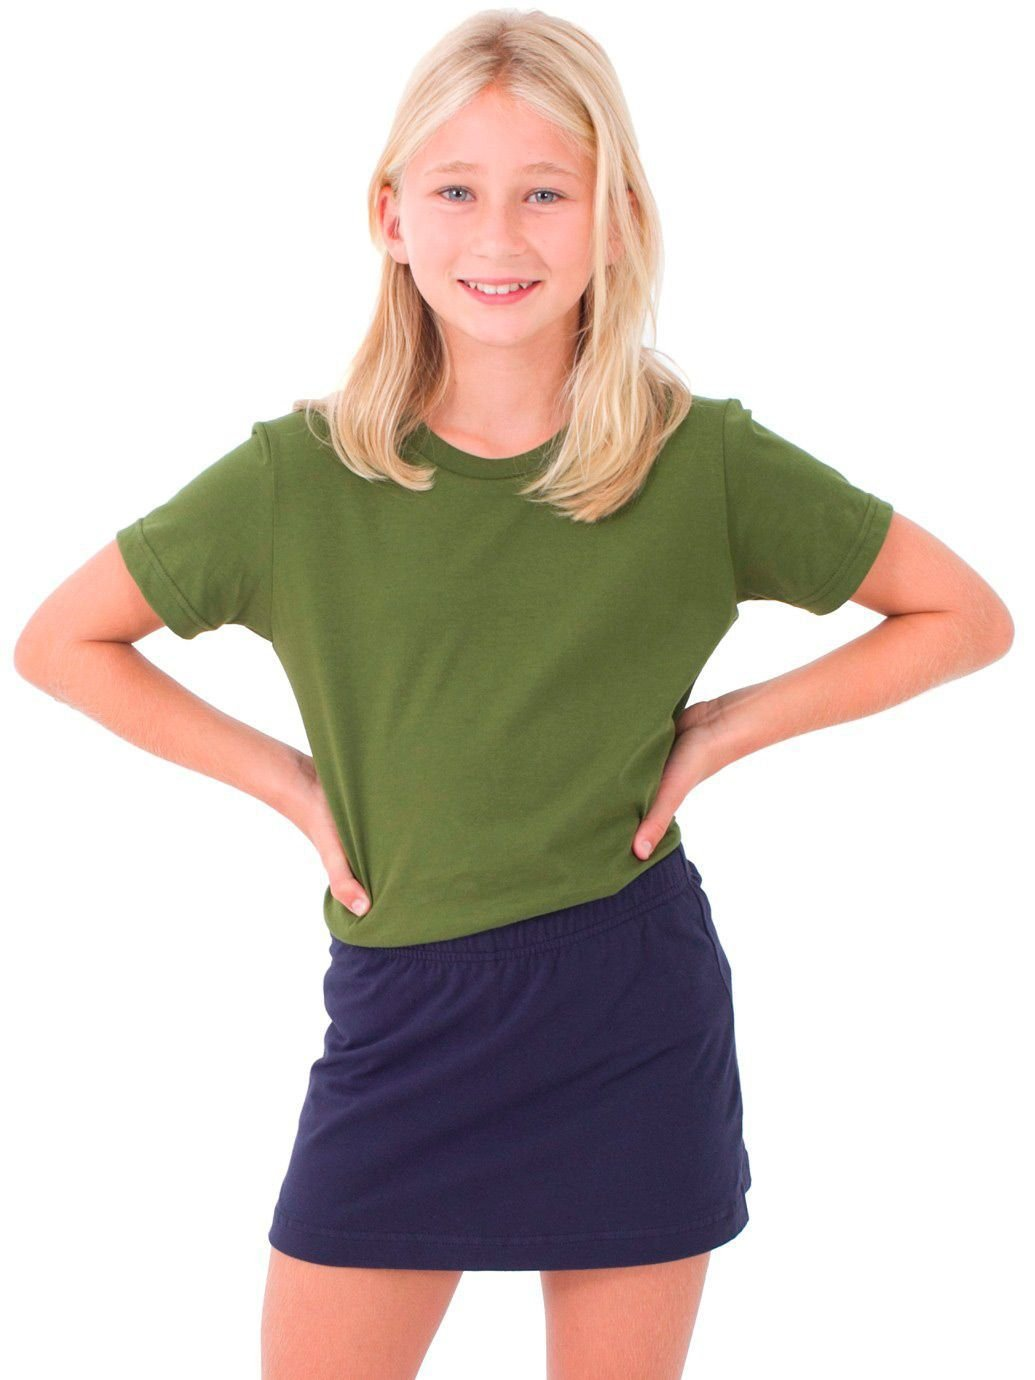 American Apparel Youth Fine Jersey Short Sleeve T-Shirt - Olive / 10 Years